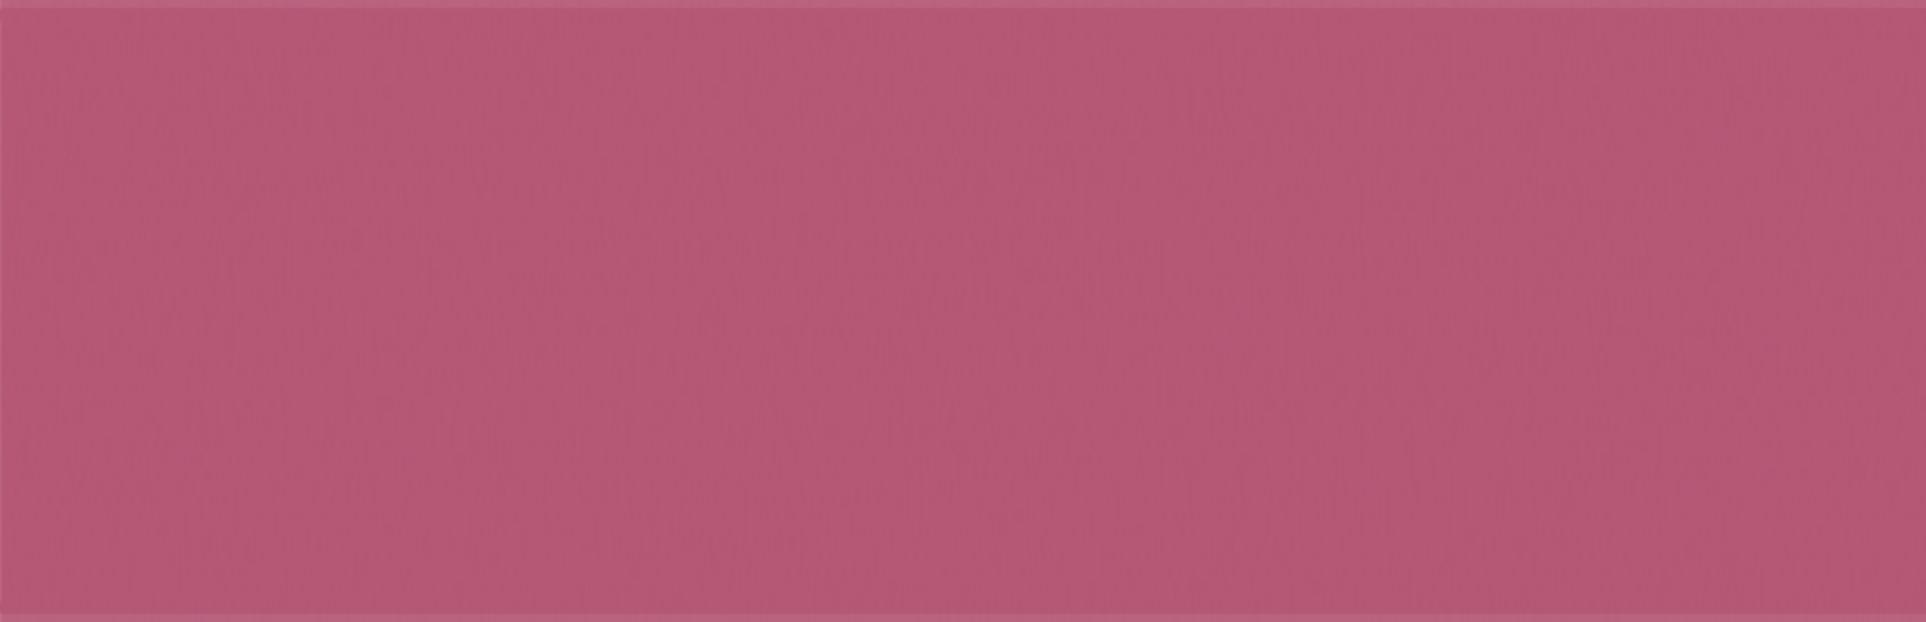 cookie policy pink banner plain colour